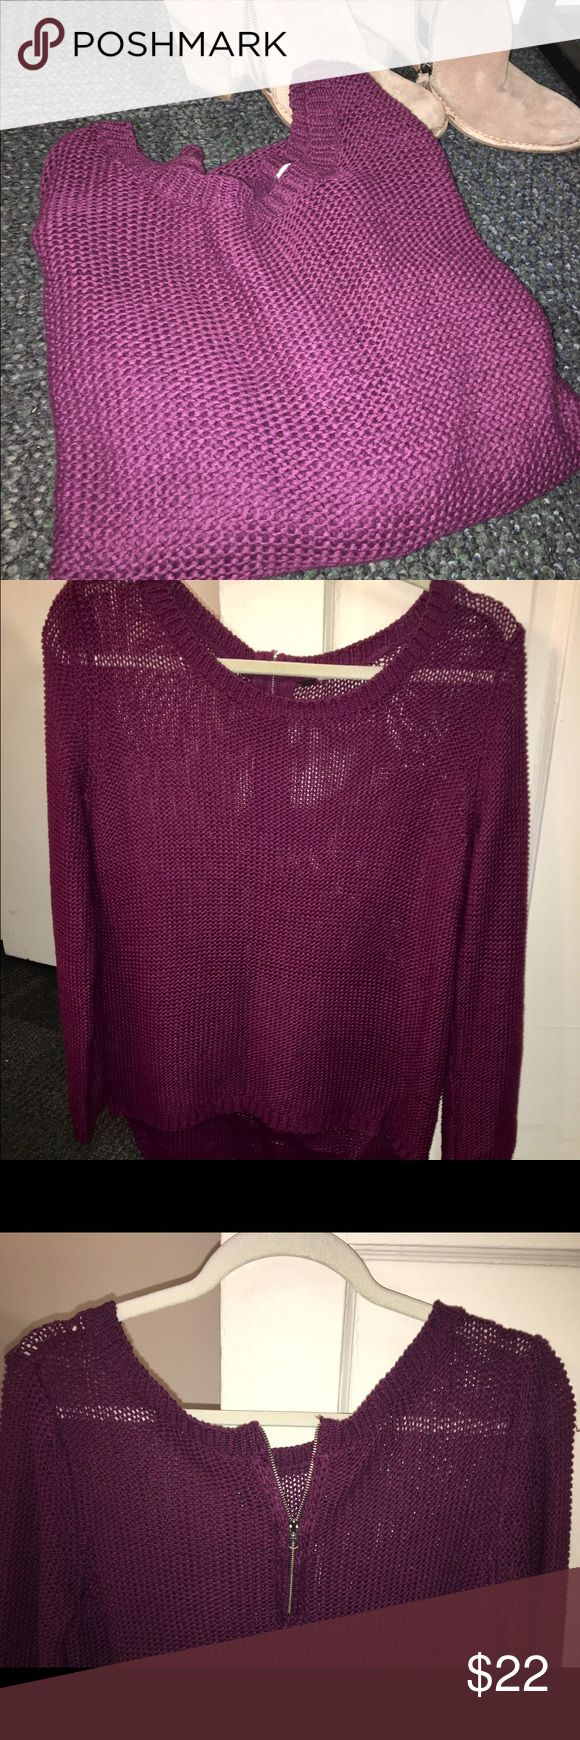 Sweater with a zipper on the back Comfy cute and a little sexy! The zipper is movable. I moved it down to show that it can move!! Pair this baby with ripped jeans and booties or if you're going for a more laid back look, leggings and warm winter boots! Offers welcome XO American Apparel Sweaters